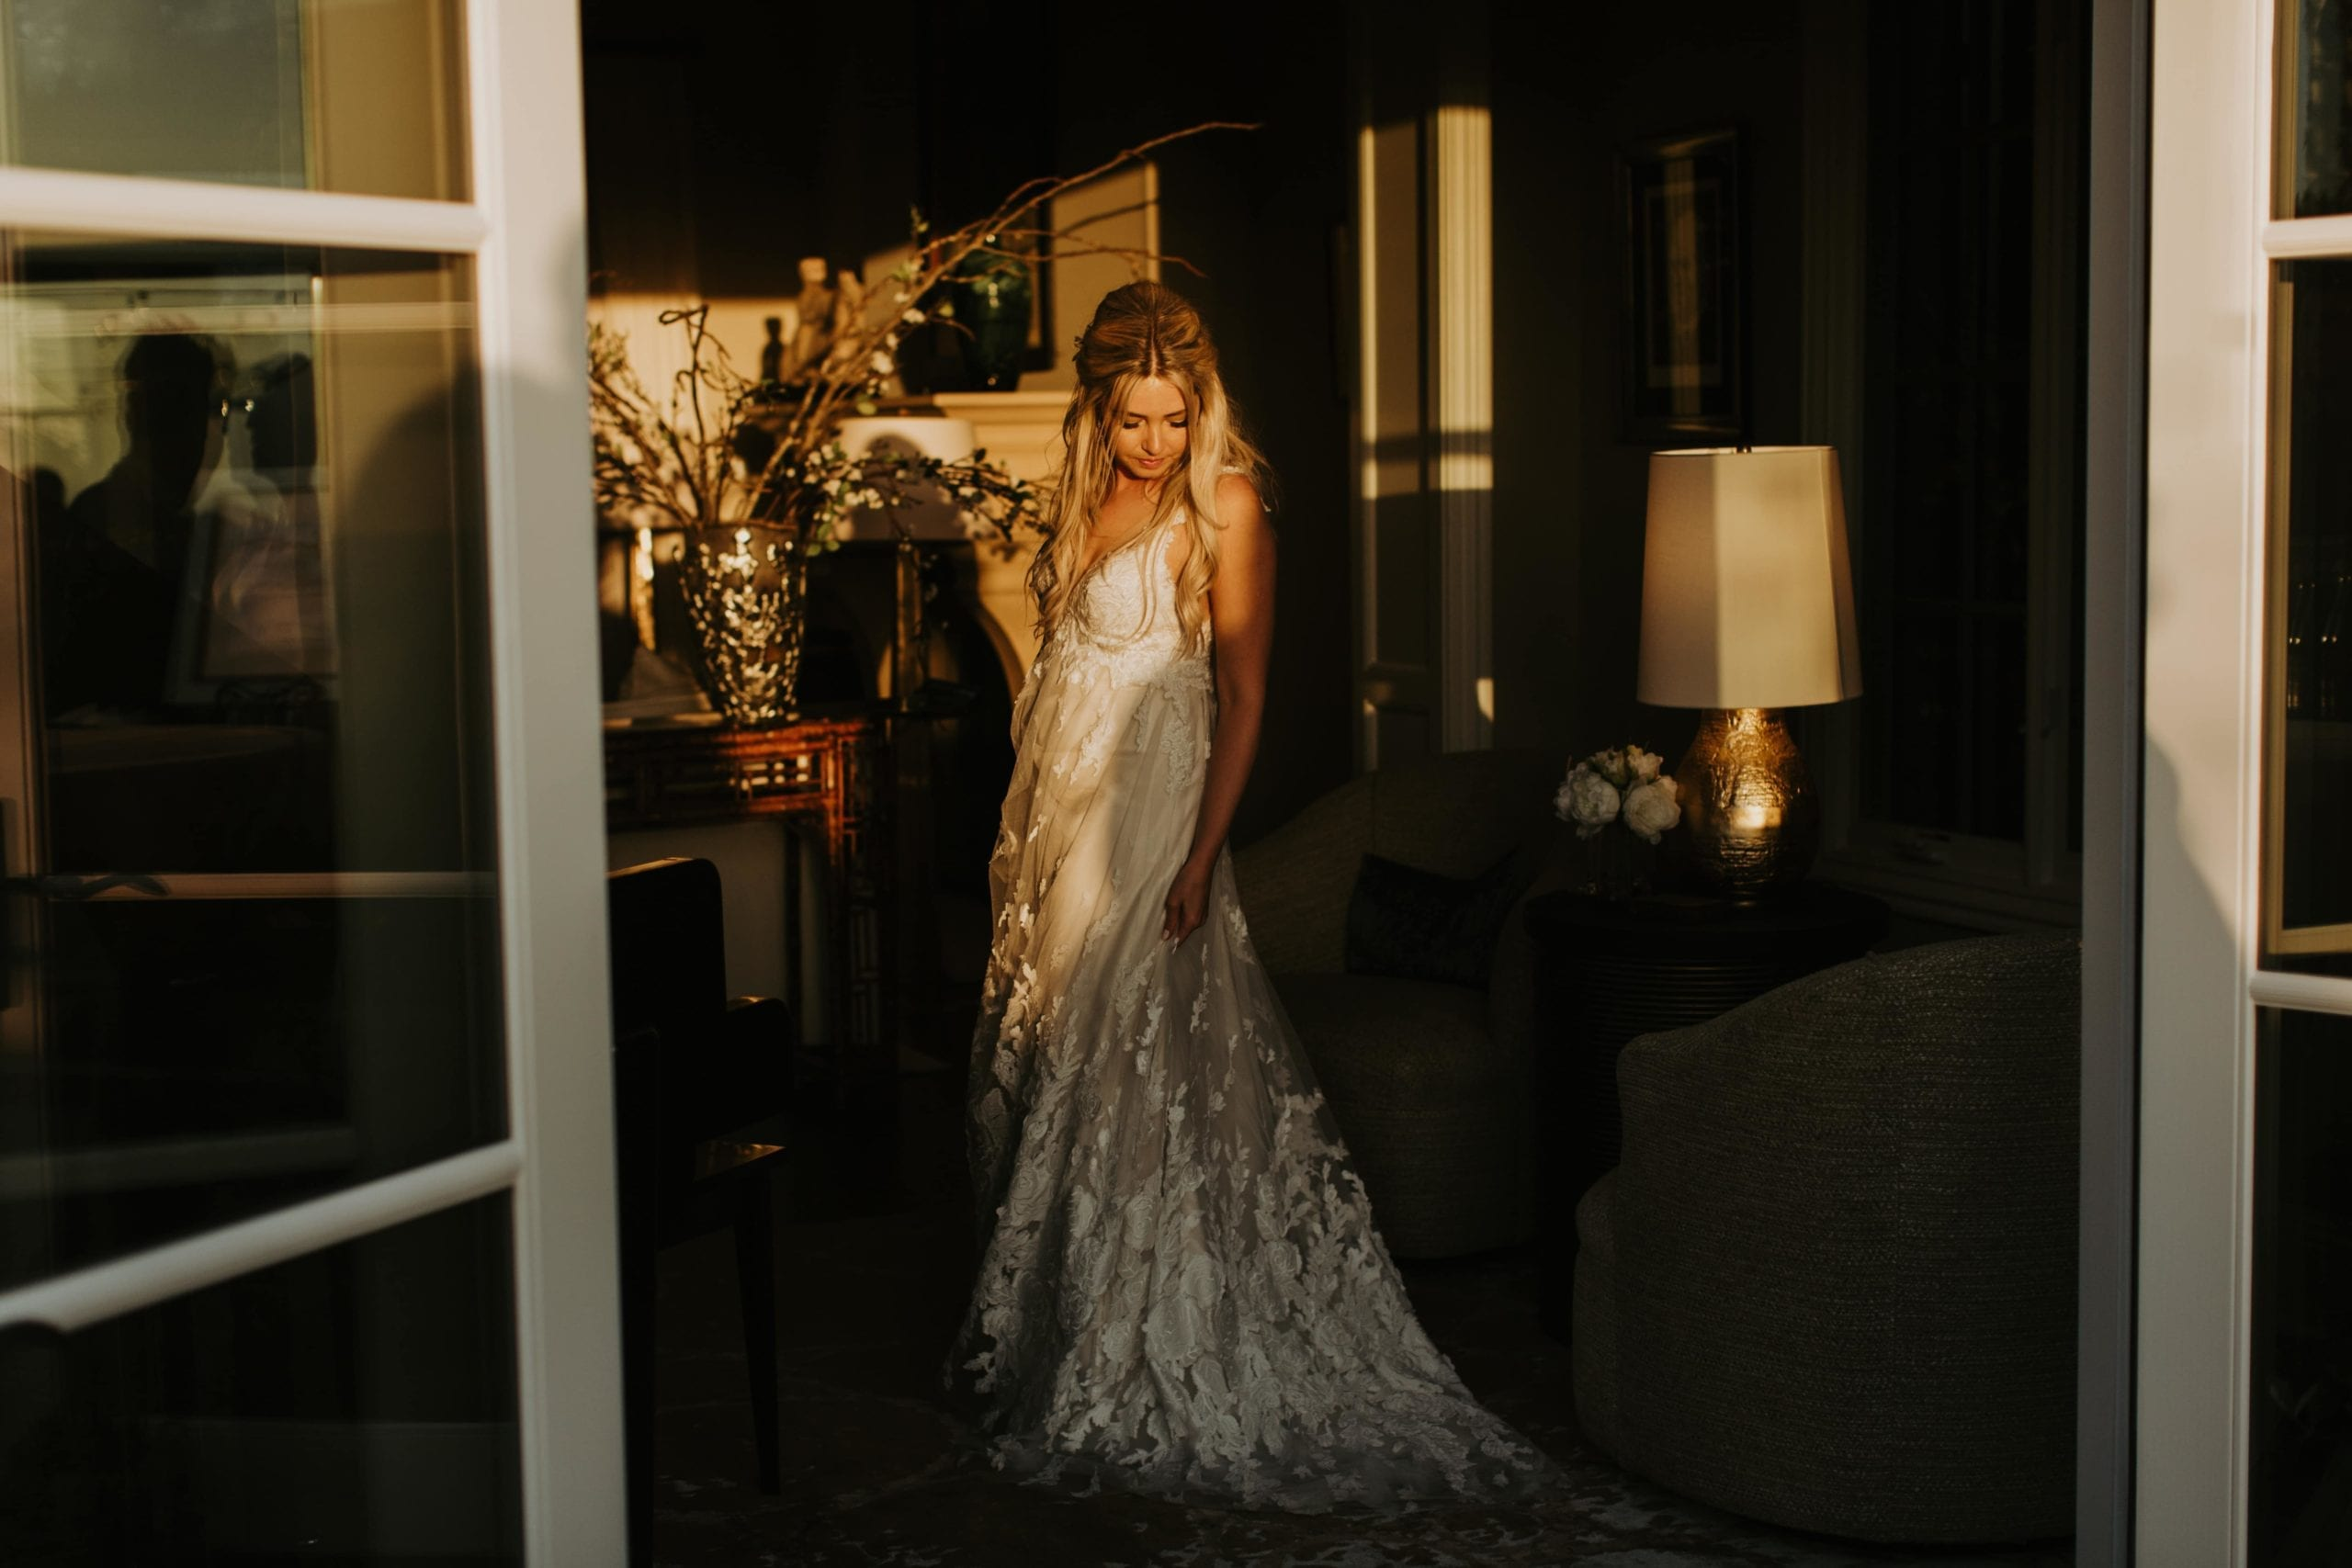 Real Weddings | Vinka Design | Real Brides Wearing Vinka Gowns | Camilla and Aaron - Camilla in doorway with beautiful bespoke wedding dress falling to her side